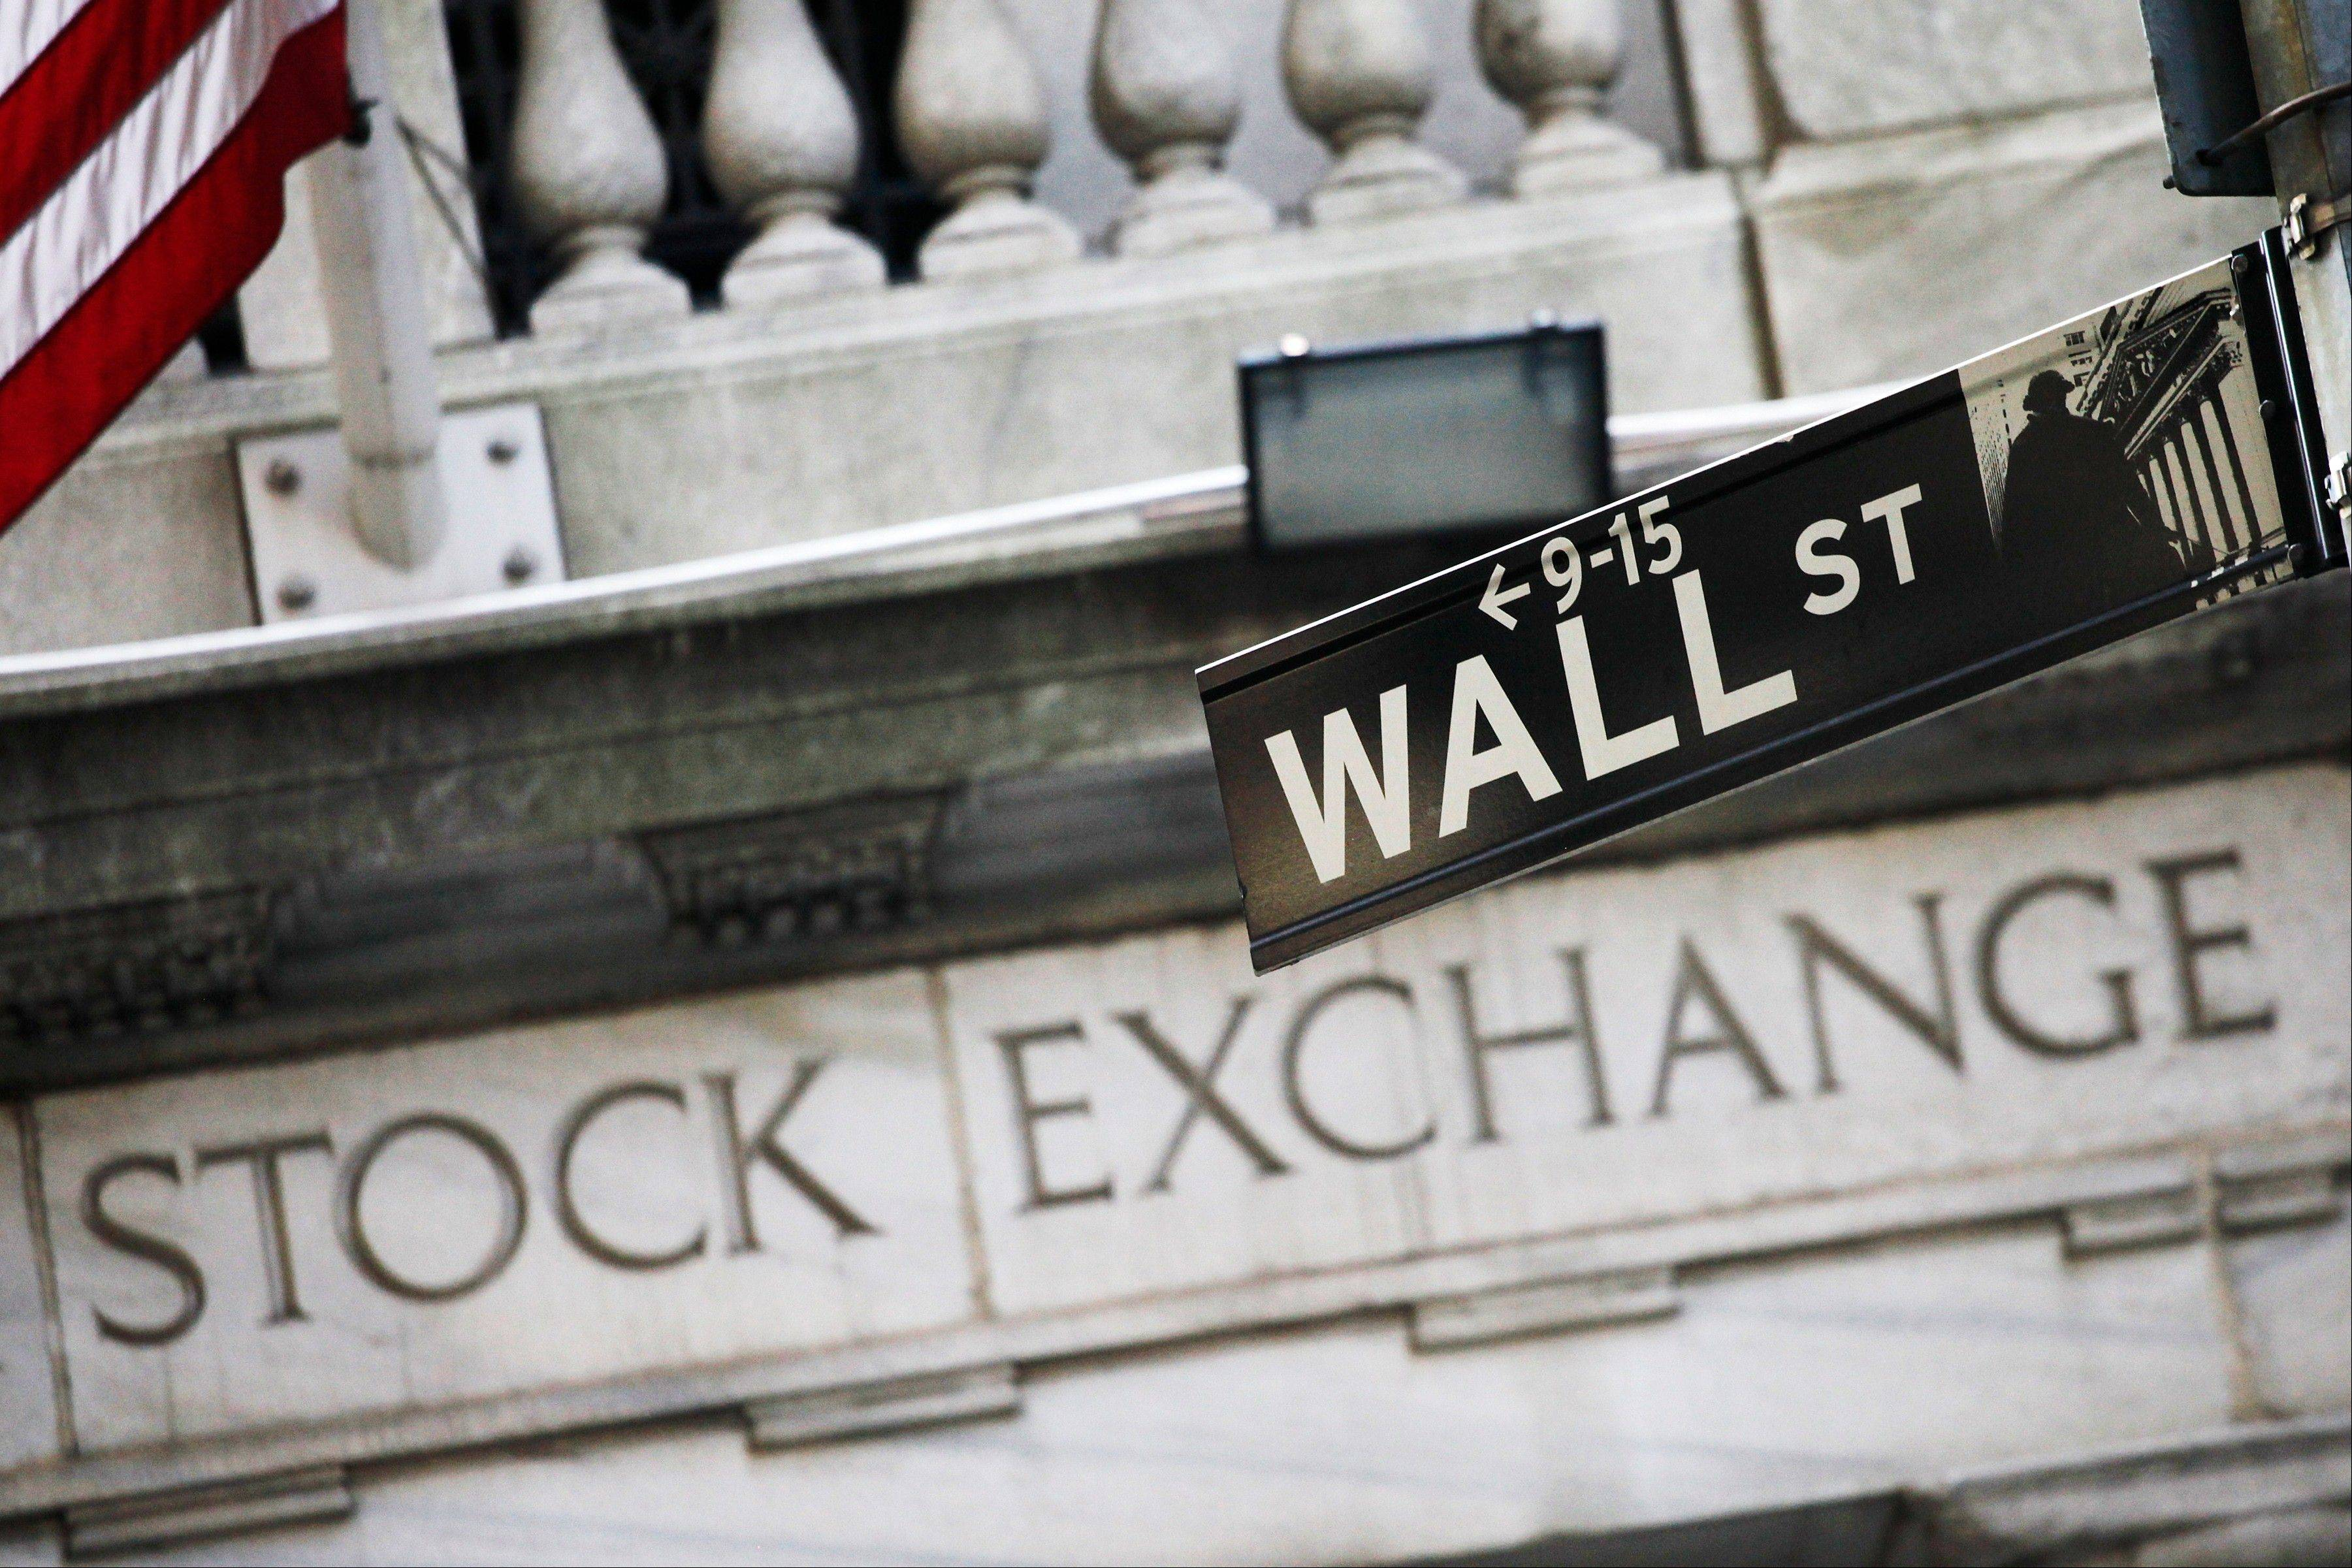 U.S. stocks fell, halting the longest rally in the Standard & Poor's 500 Index since January, as Coca-Cola Co.'s profit dropped and a Federal Reserve official called for cuts to stimulus.